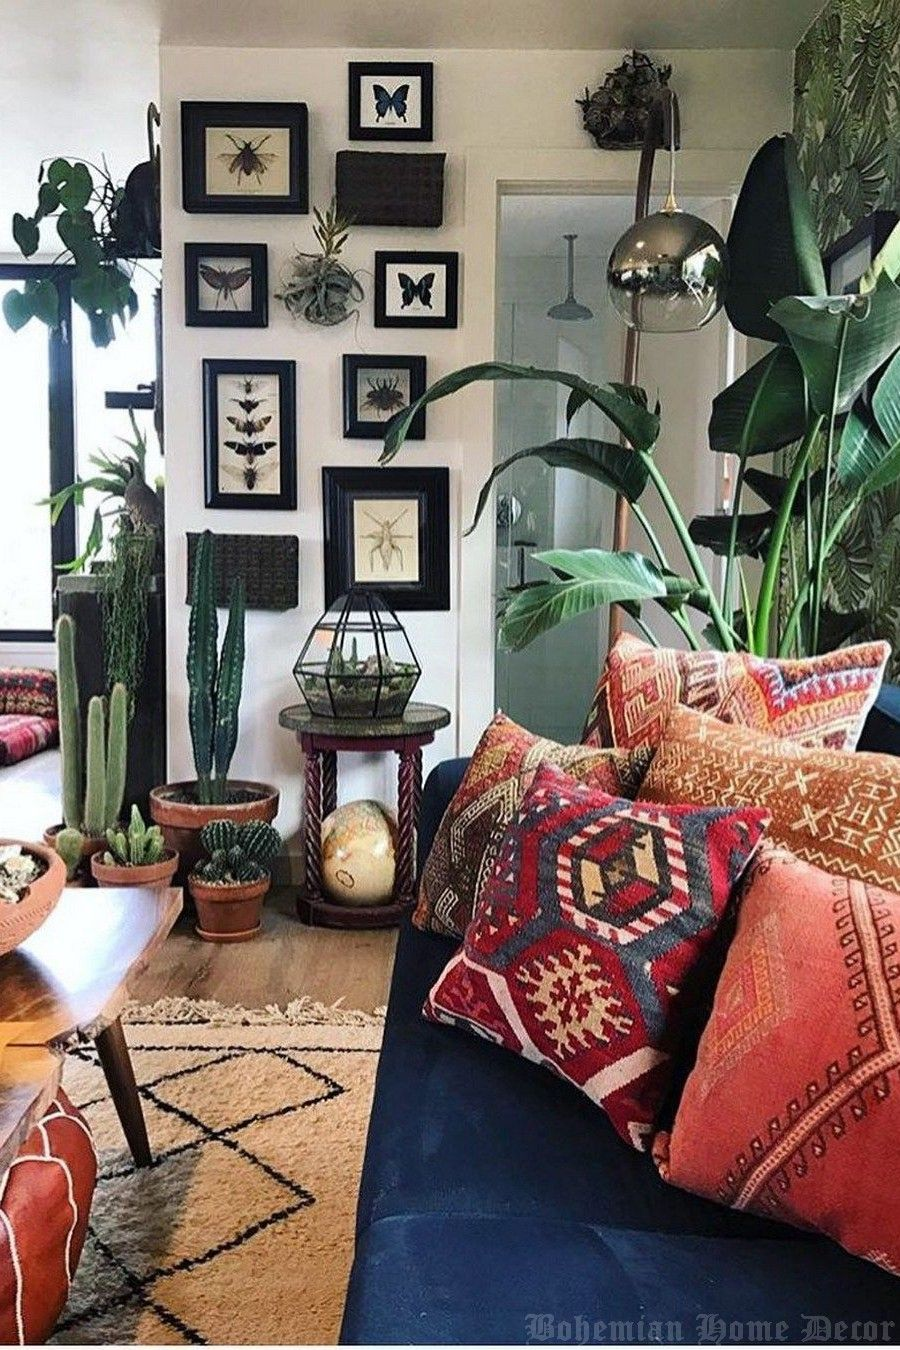 Will Bohemian Home Decor Ever Die?